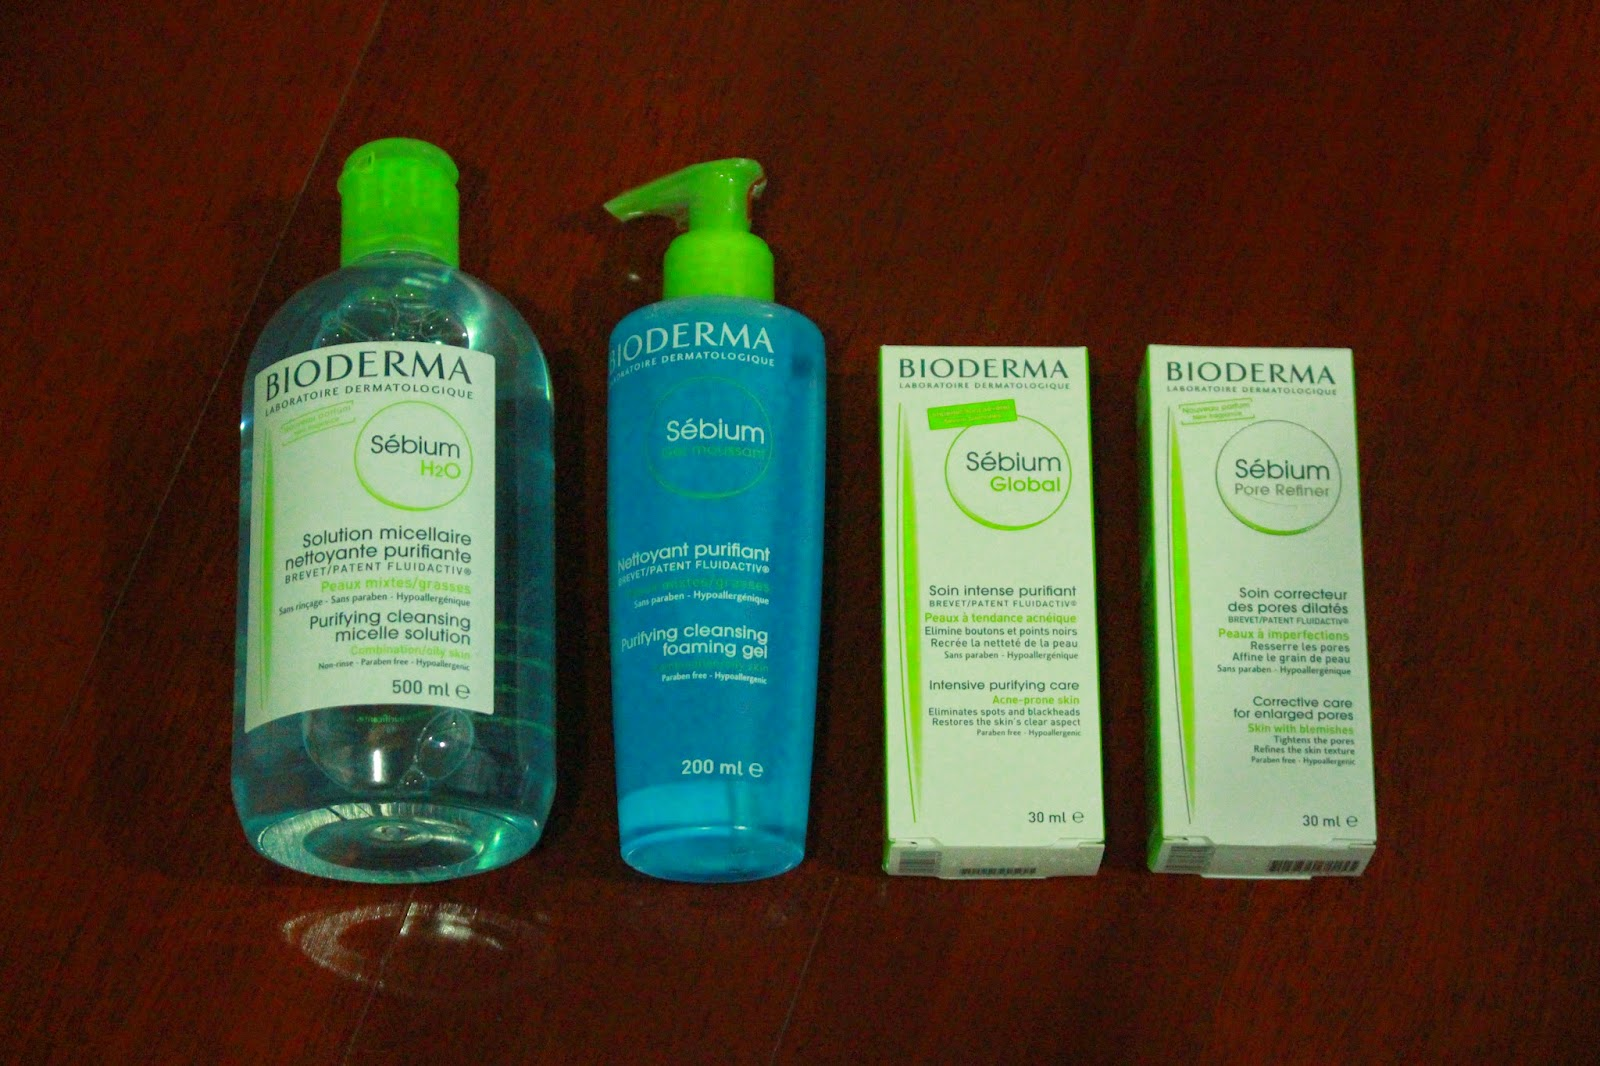 Bioderma Sebium Micelle Solution, Purifying Cleansing Foaming Gel, Sebium Global and Sebium Pore Refiner